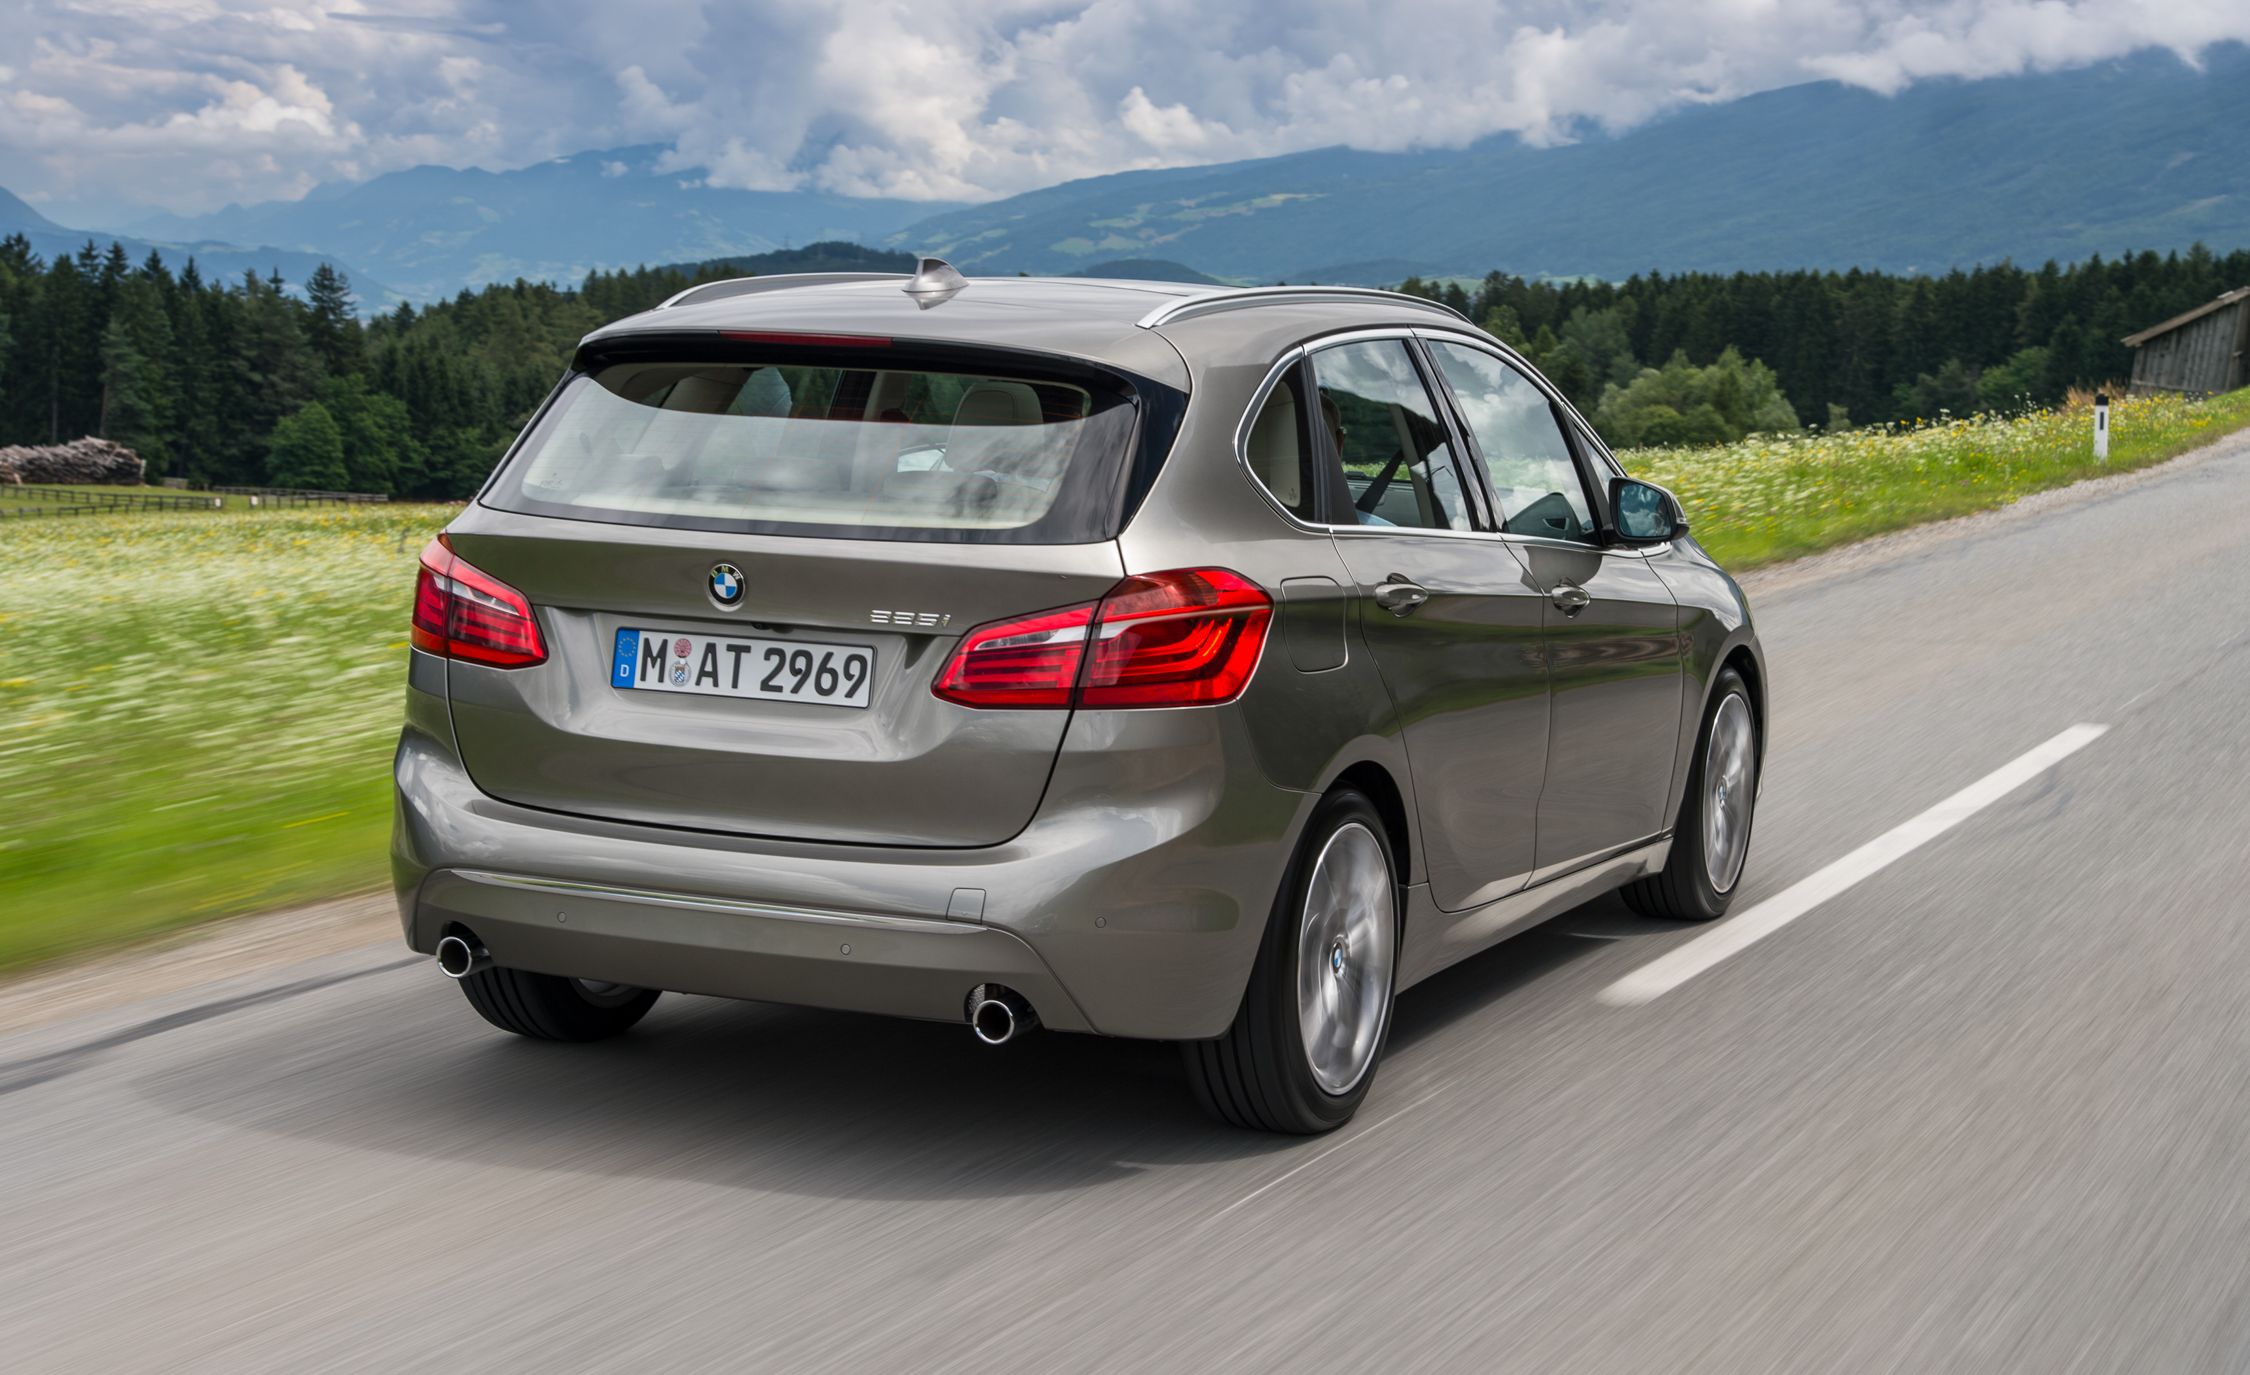 2015 BMW 225i Active Tourer (Euro Spec) (Photo 5 of 14)